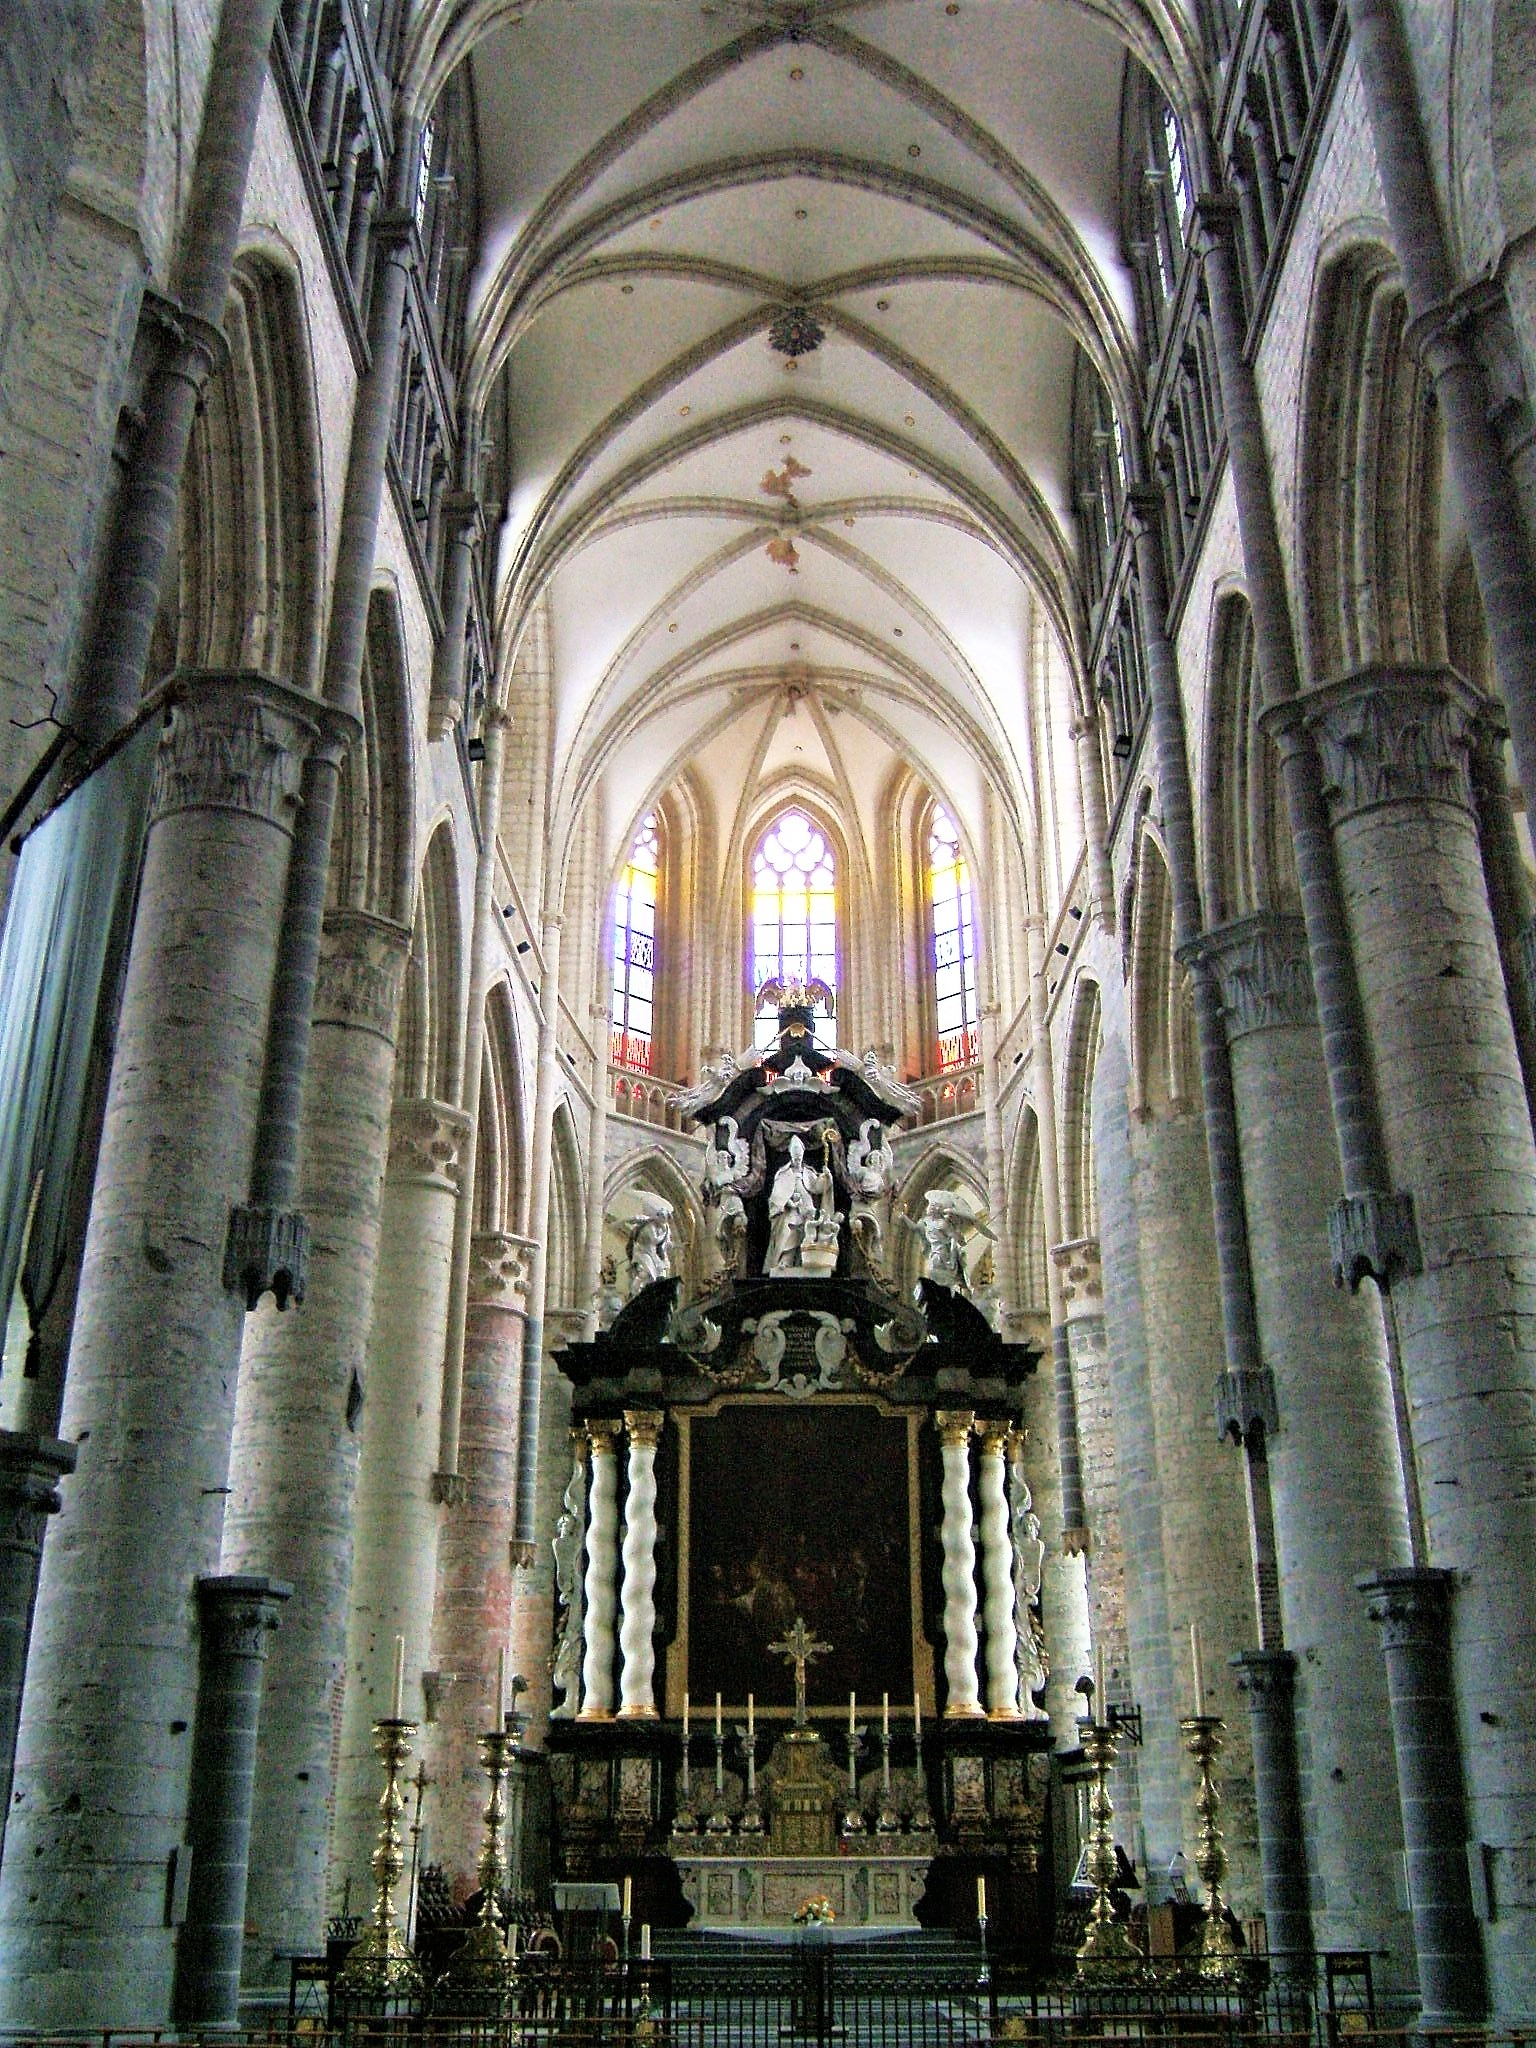 Inside the church of St. Nicholas, Gent